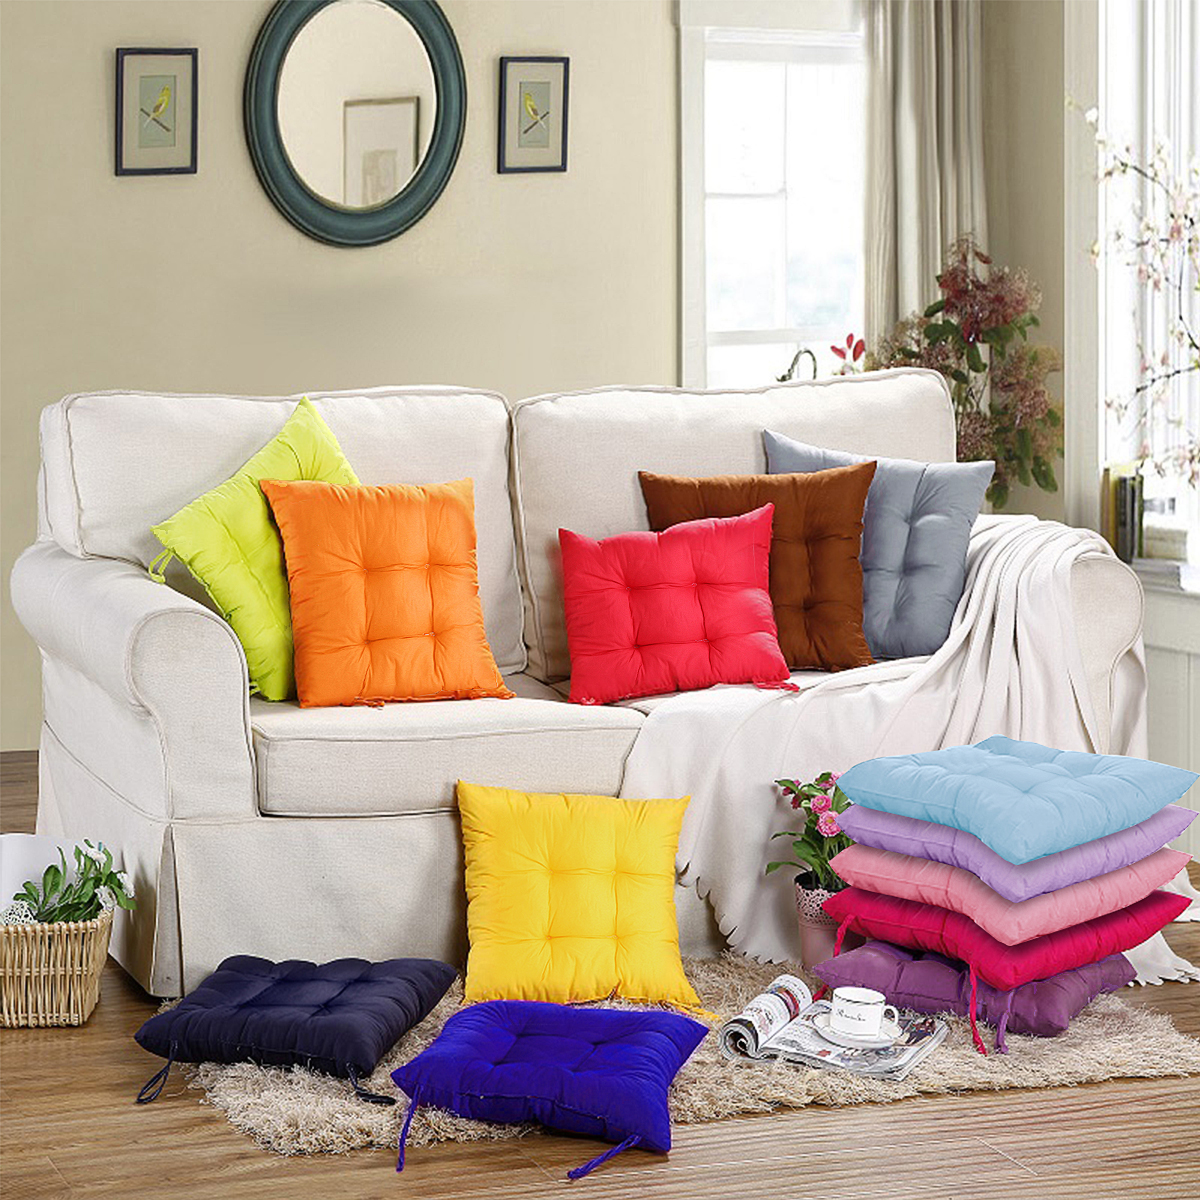 15.8*15.8inch Multi-colors Soft Square Cotton  Soft Comfort Sit Mat Indoor Outdoor Sofa Chair Seat Cushion Pillow Pads Buttocks For Garden Patio Home Kitchen Office Chairs Decor